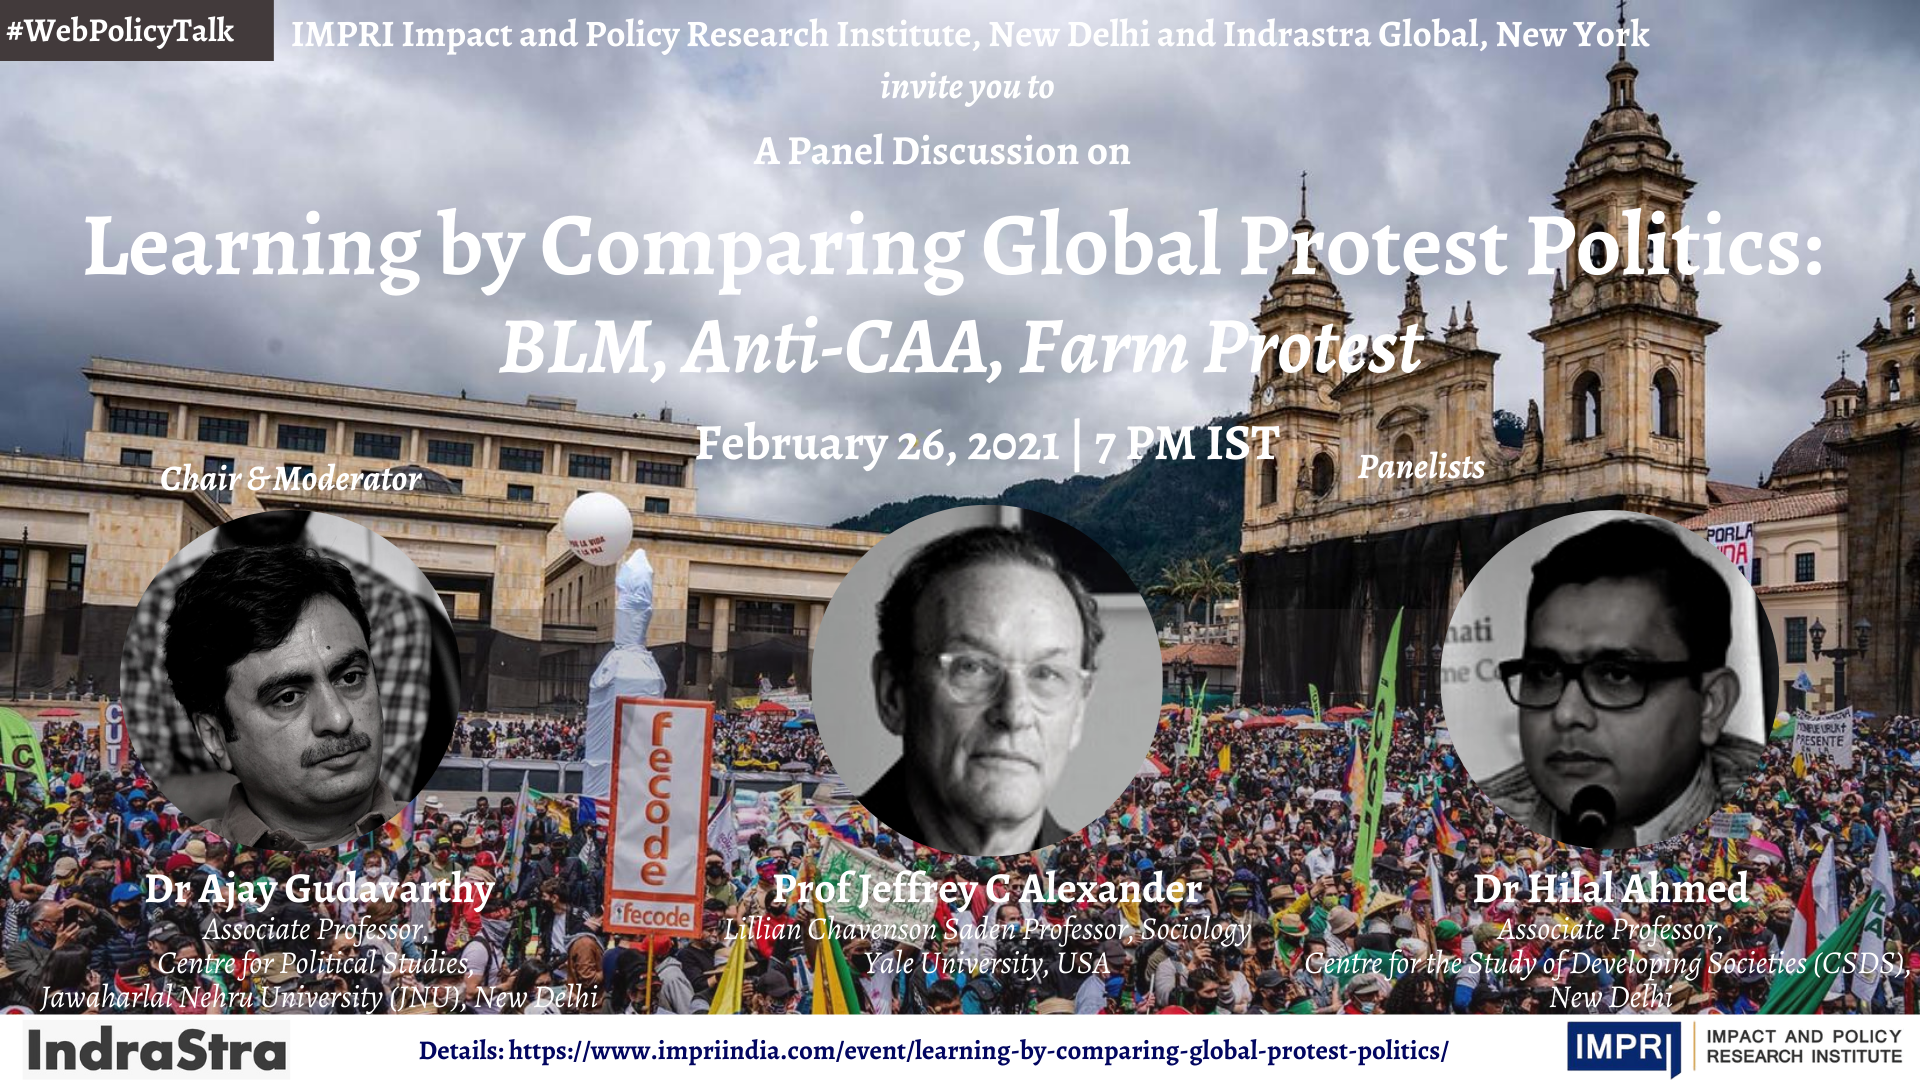 Learning by Comparing Global Protest Politics: BLM, Anti-CAA, Farm Protest